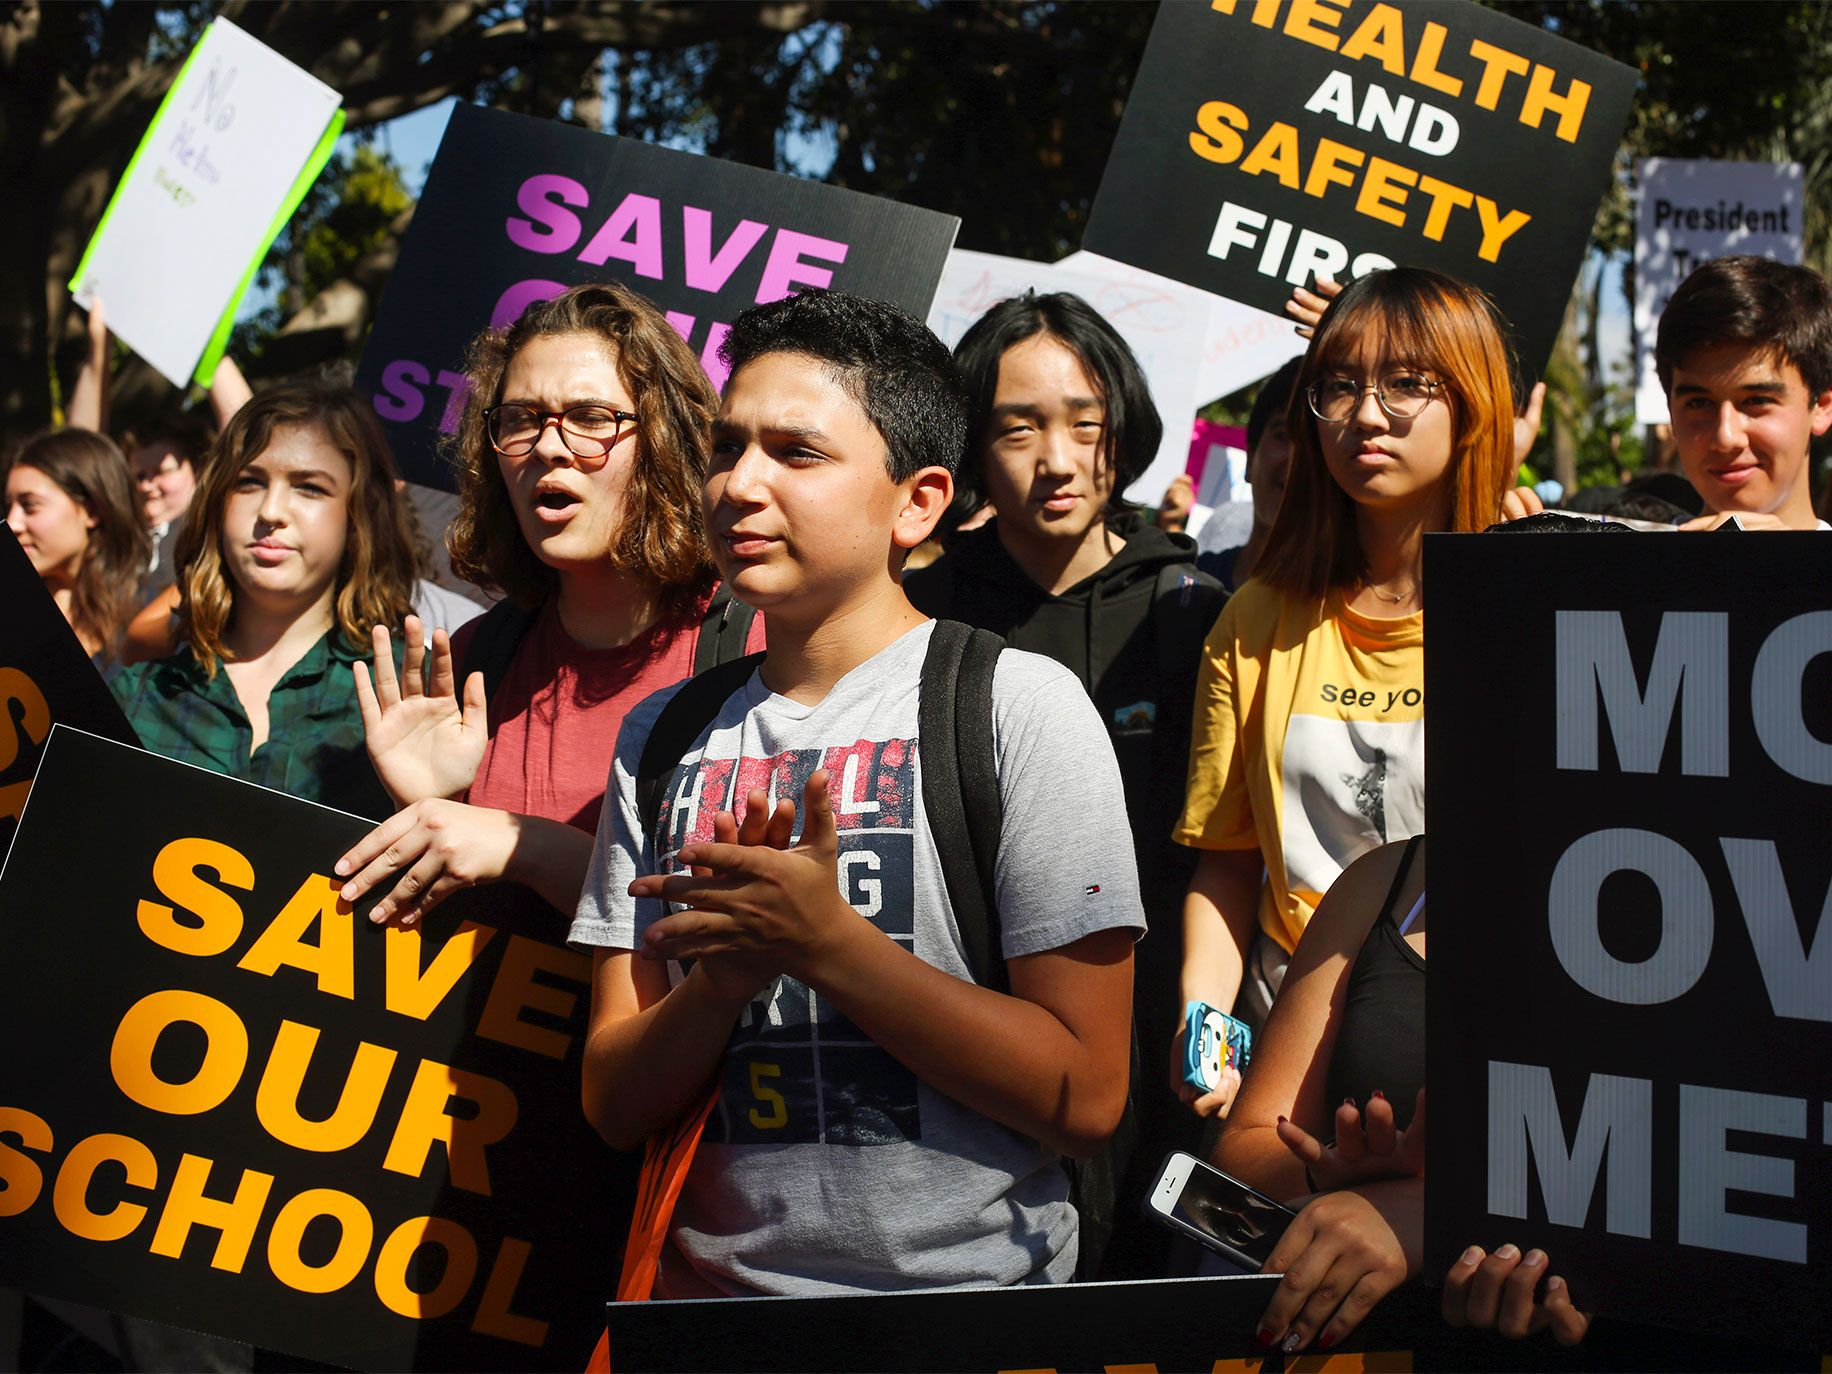 In a demonstration organized by school administrators, students from the Beverly Hills Unified School District rallied at Will Rogers Memorial Park in October to protest the extension of LA Metro's Purple Line subway under Beverly Hills High.